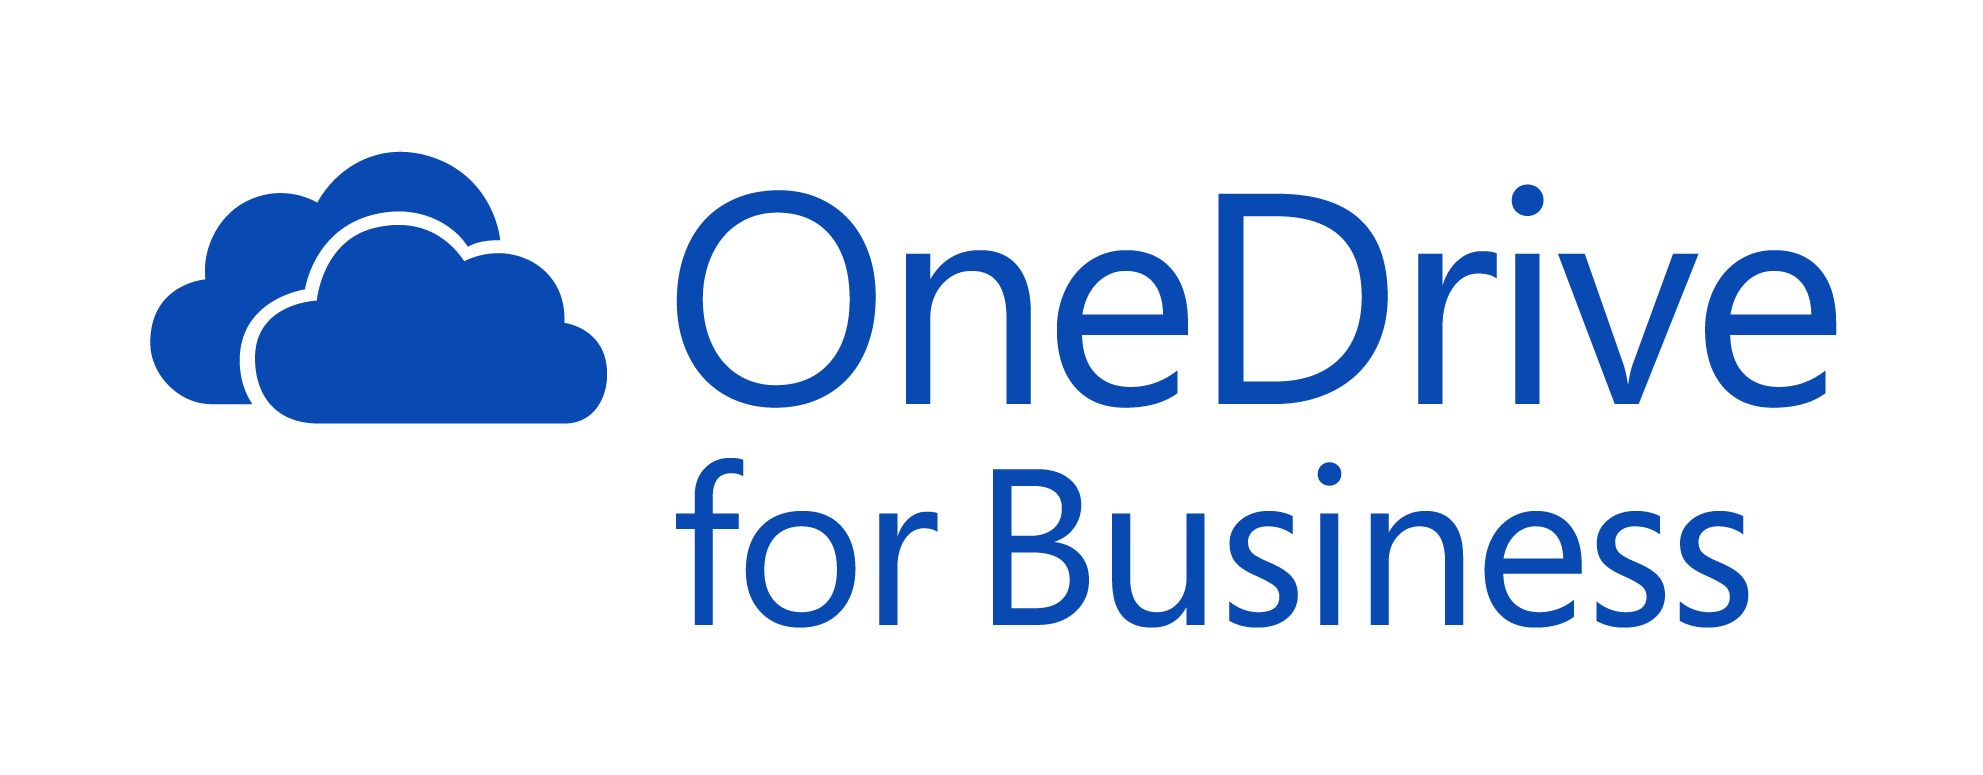 SkyDrive and SkyDrive Pro are now OneDrive and OneDrive for Business